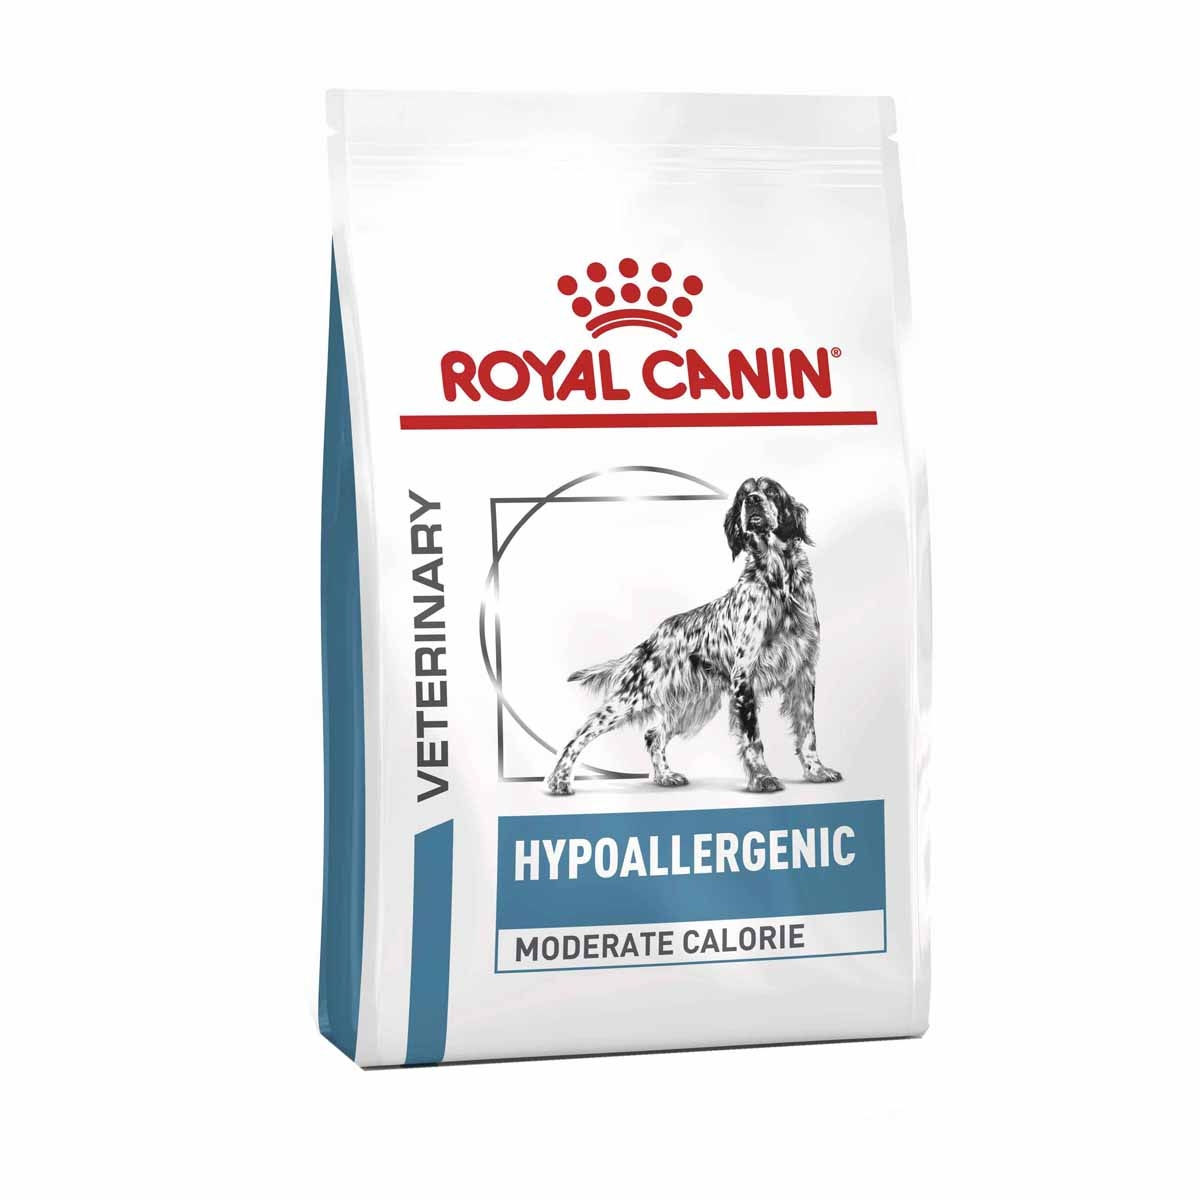 Royal Canin Hypoallergenic Moderate Calorie Dog 14 kg imagine